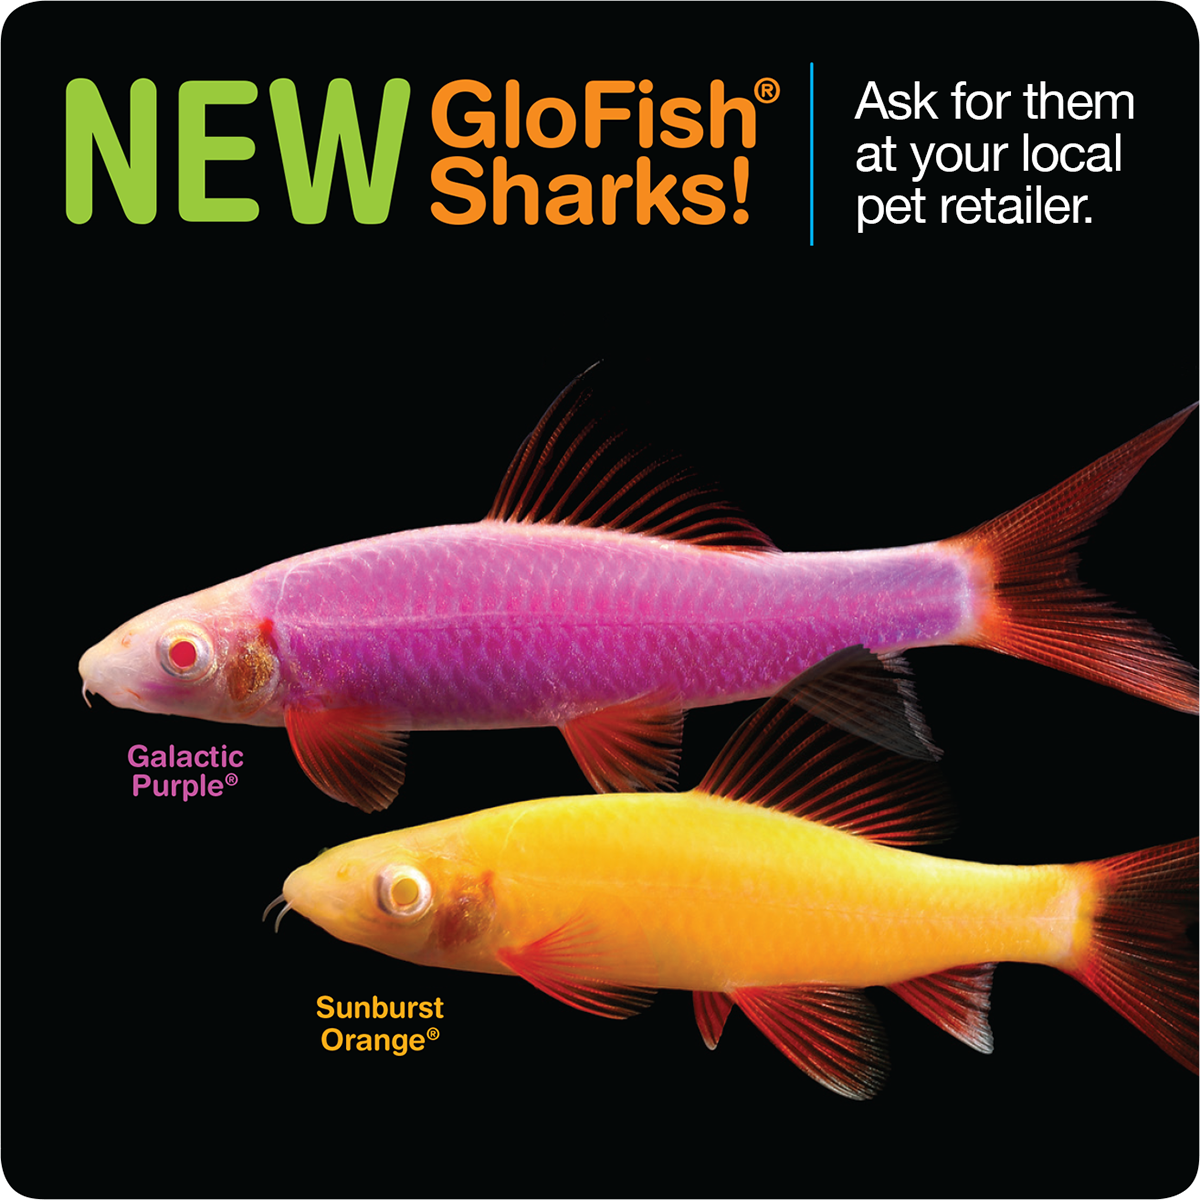 We Re Excited To Bring You The Latest And Largest Member Of The Glofish Fluorescent Fish Family The Glofish Shark Glofish Sh Glofish Glow Fish Pet Fish